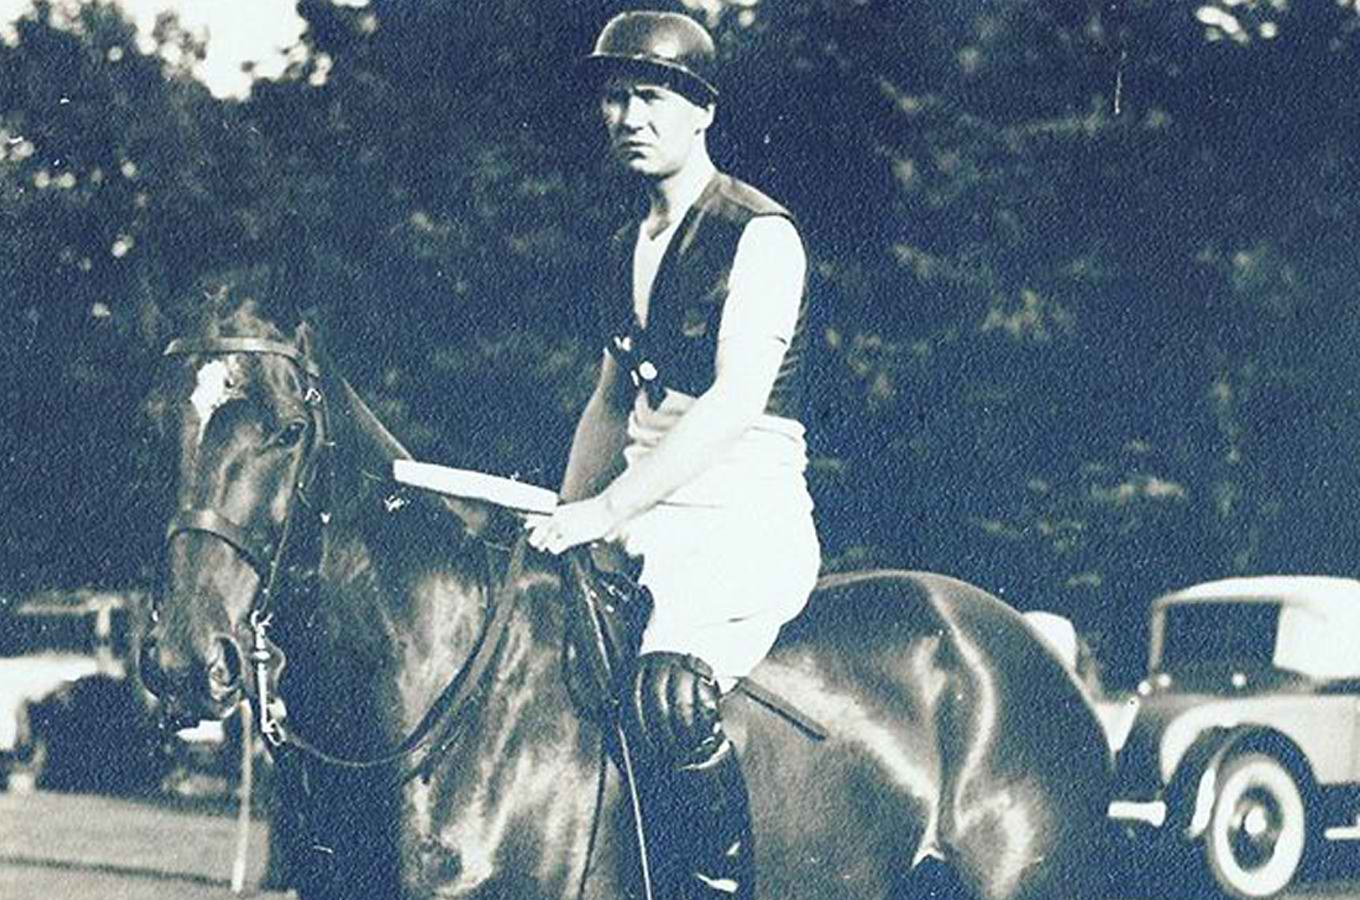 Philip L.B. Iglehart The life a Polo player